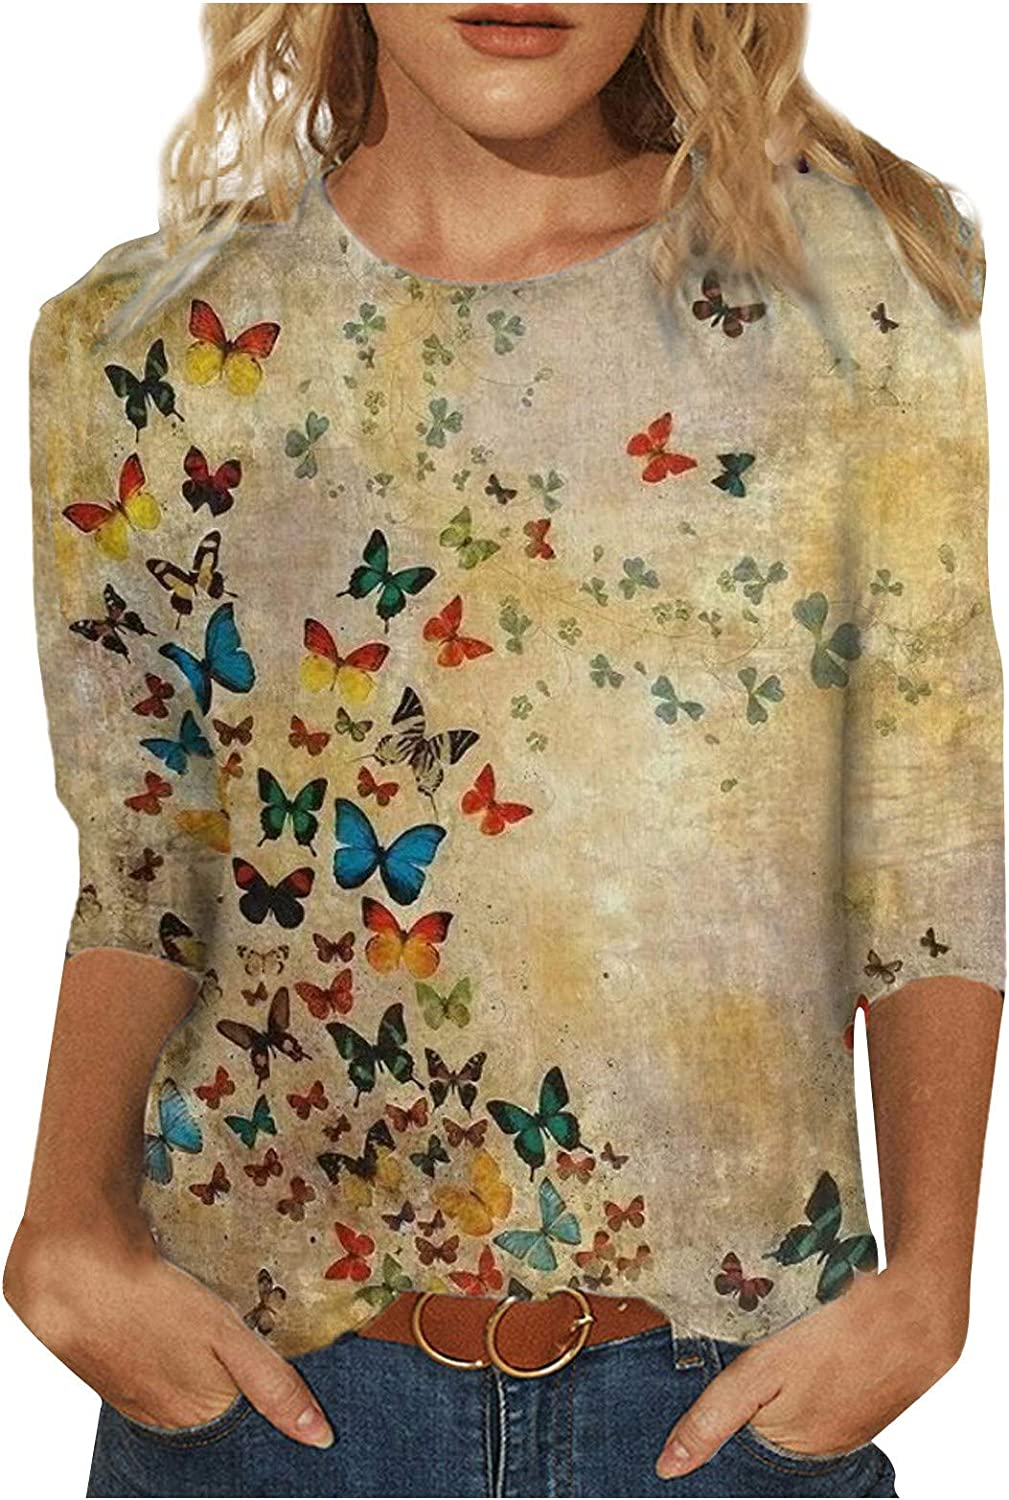 AODONG Tops for Women Casual Summer,3/4 Sleeve Plus Size Shirts Butterfly Graphic Crewneck Tshirts Soft Blouses